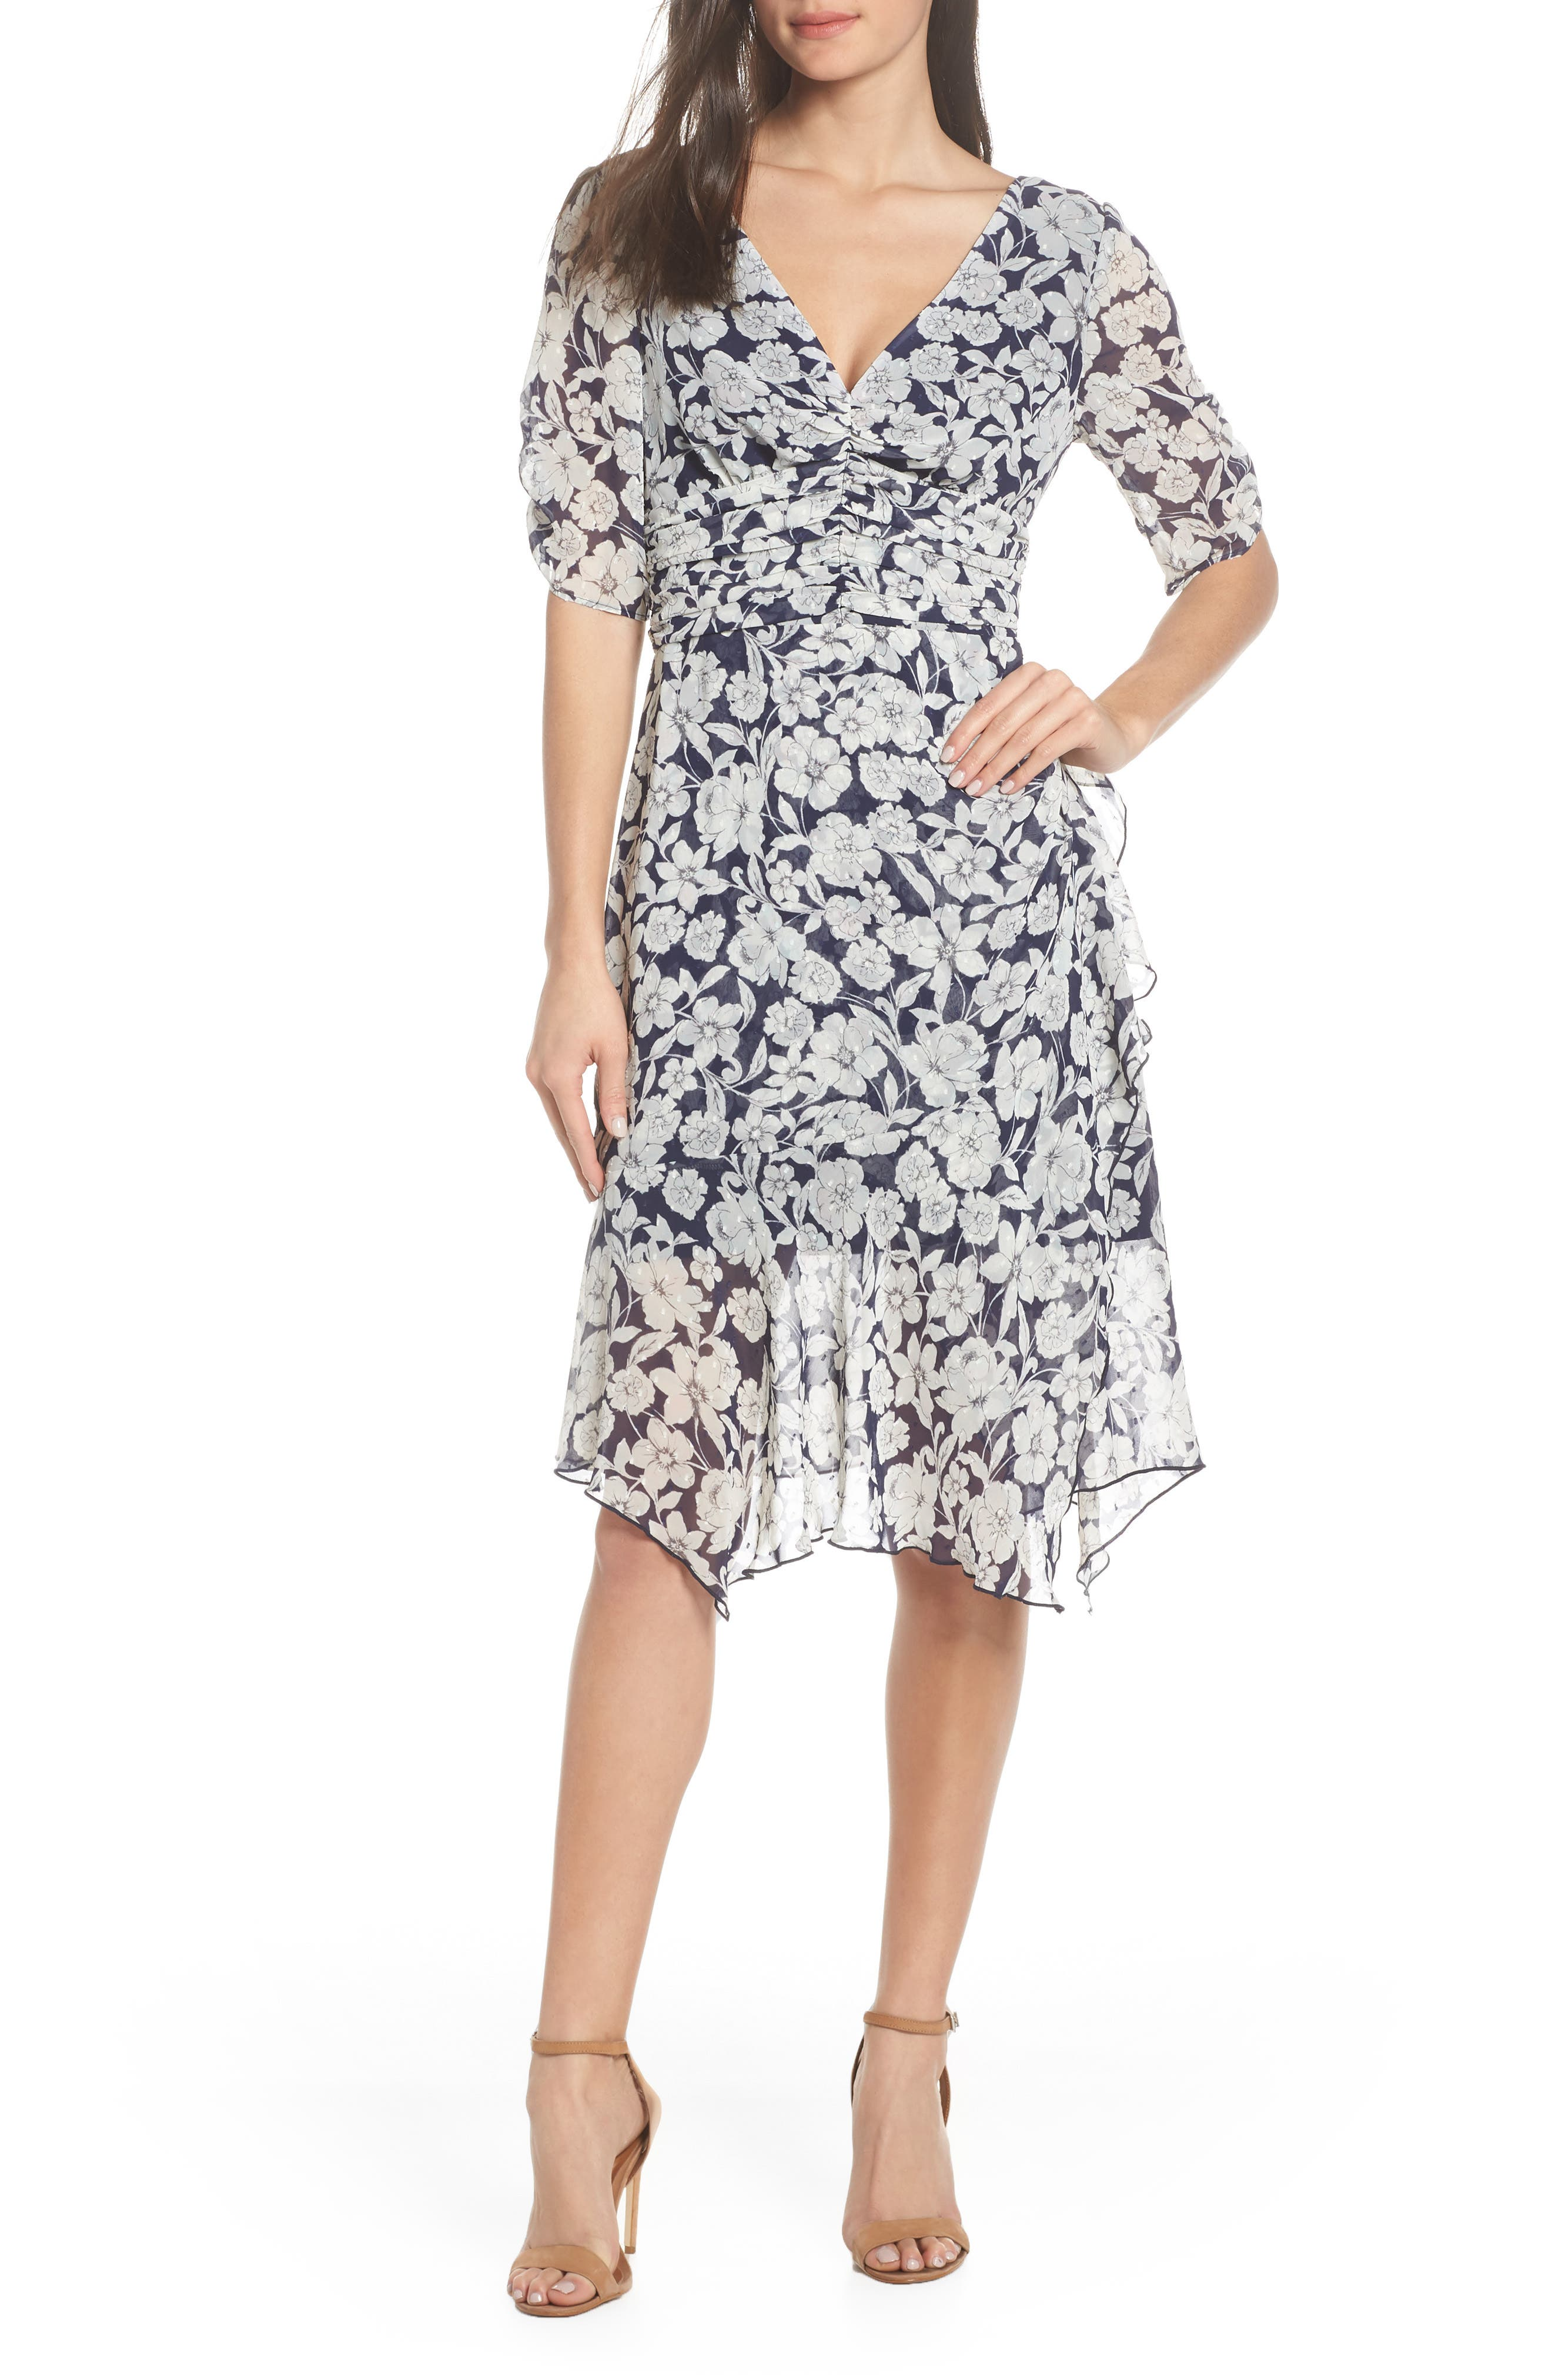 Petite Chelsea28 Floral Print Ruched Dress, Blue